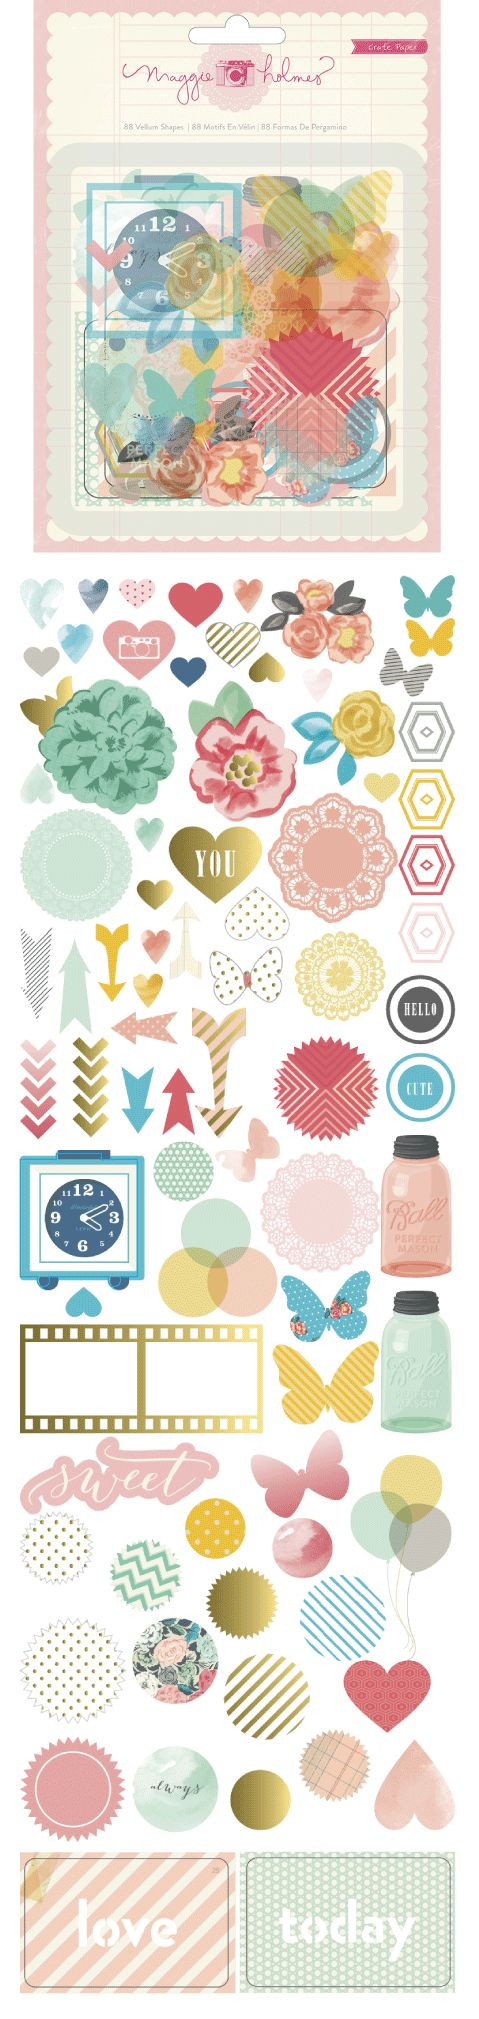 Maggie Holmes - Styleboard by Crate paper - vellum diecuts